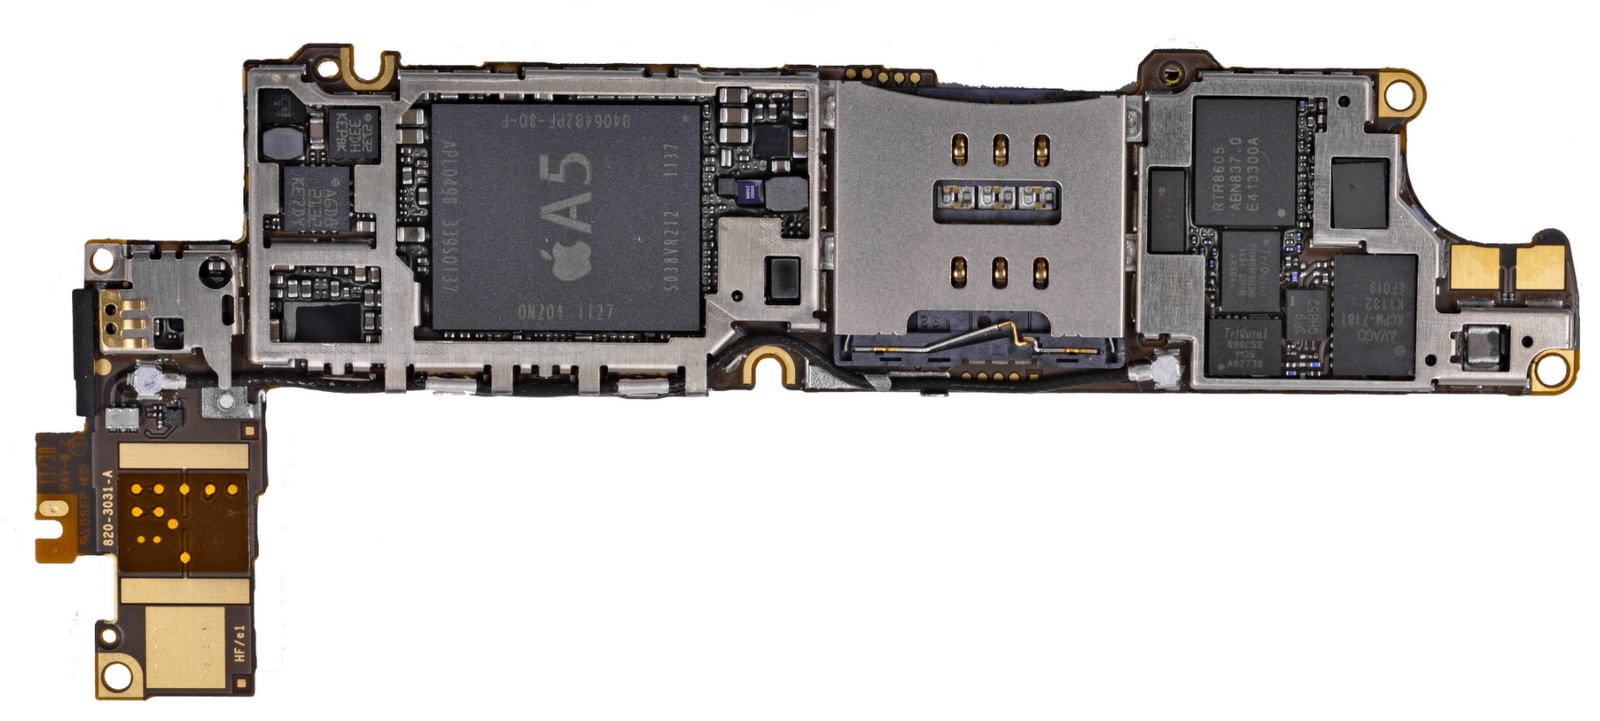 iphone 5 motherboard iphone 5 motherboard pictured 11015